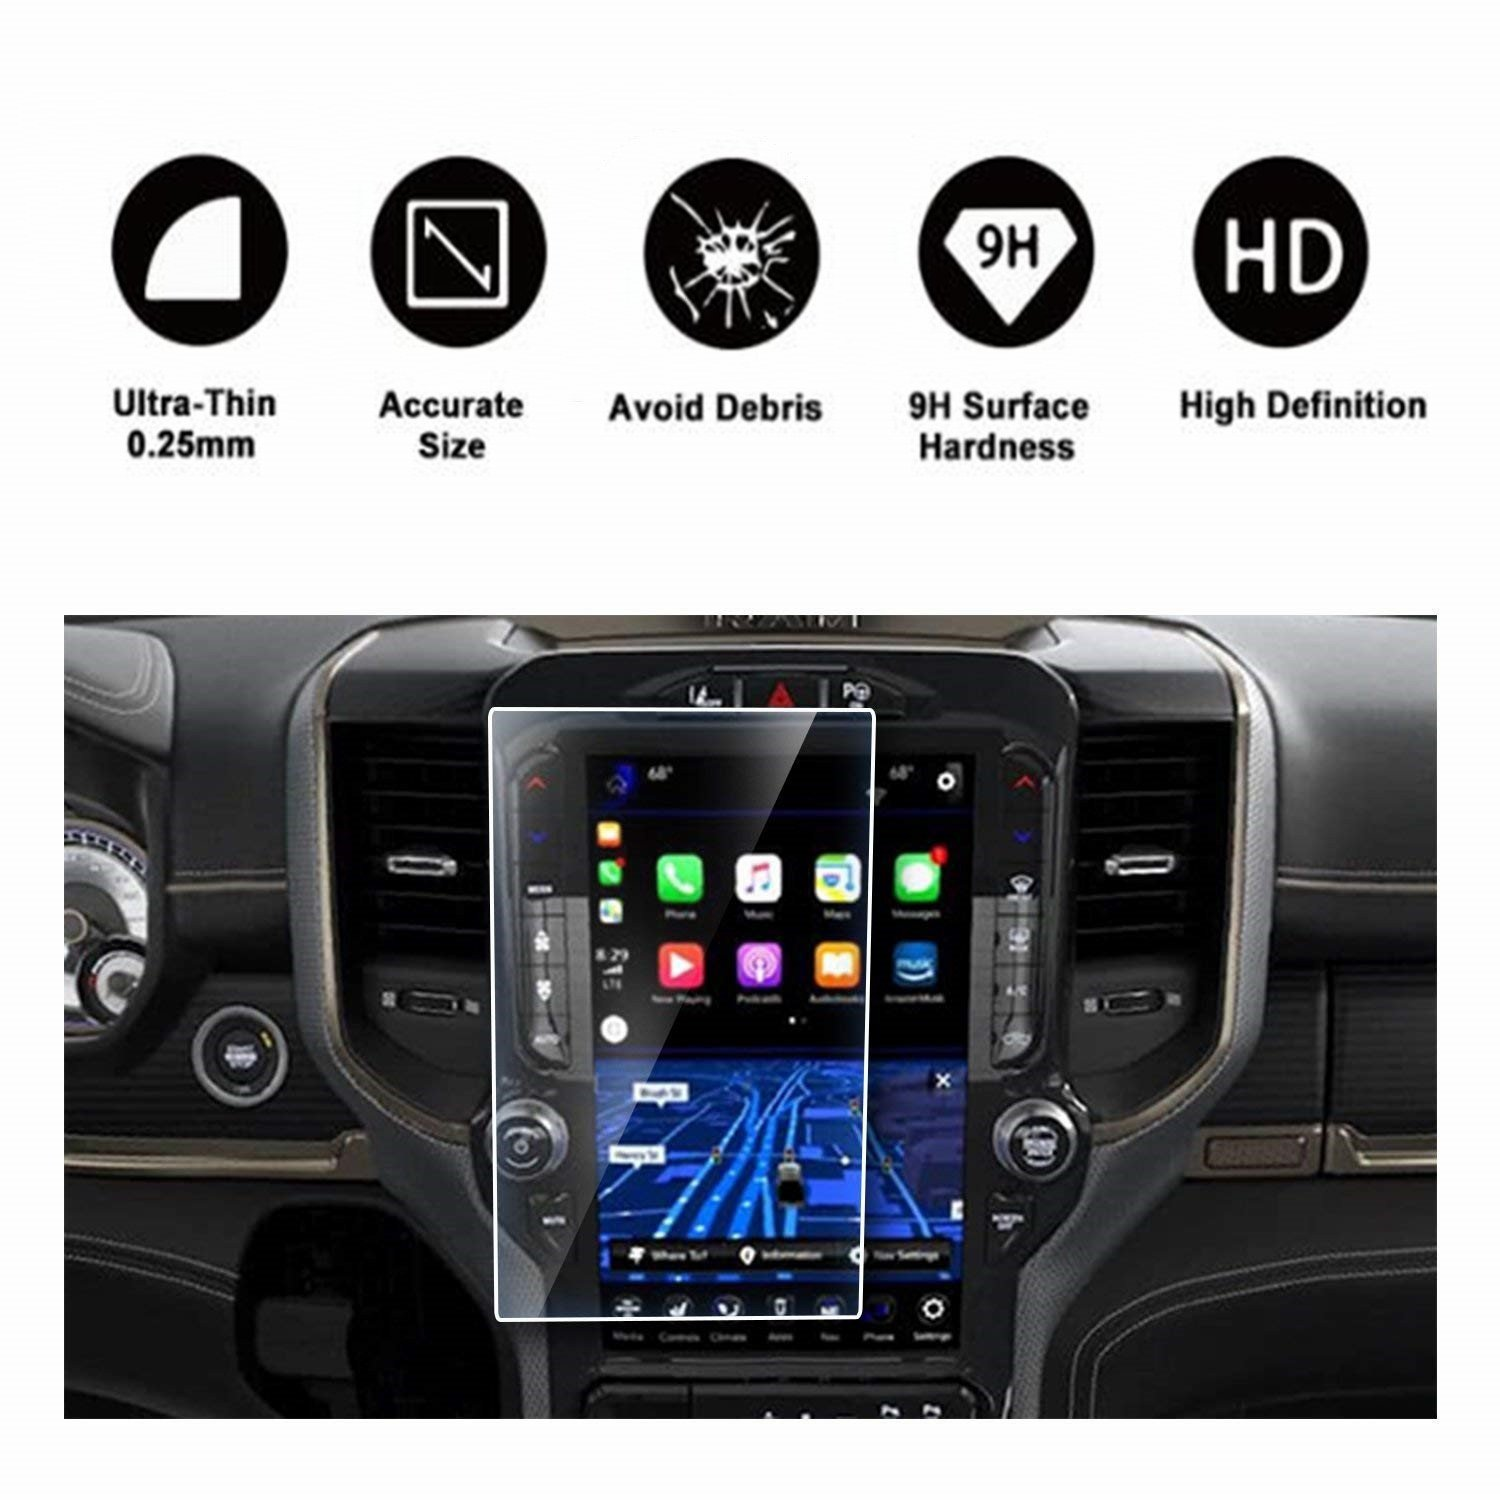 HD Clear TEMPERED GLASS Protective Film Against Scratch High Clarity RUIYA 2019RAM12IN 2019 Dodge Ram 1500 Uconnect Touchscreen Car Display Navigation Screen Protector 12 Inch